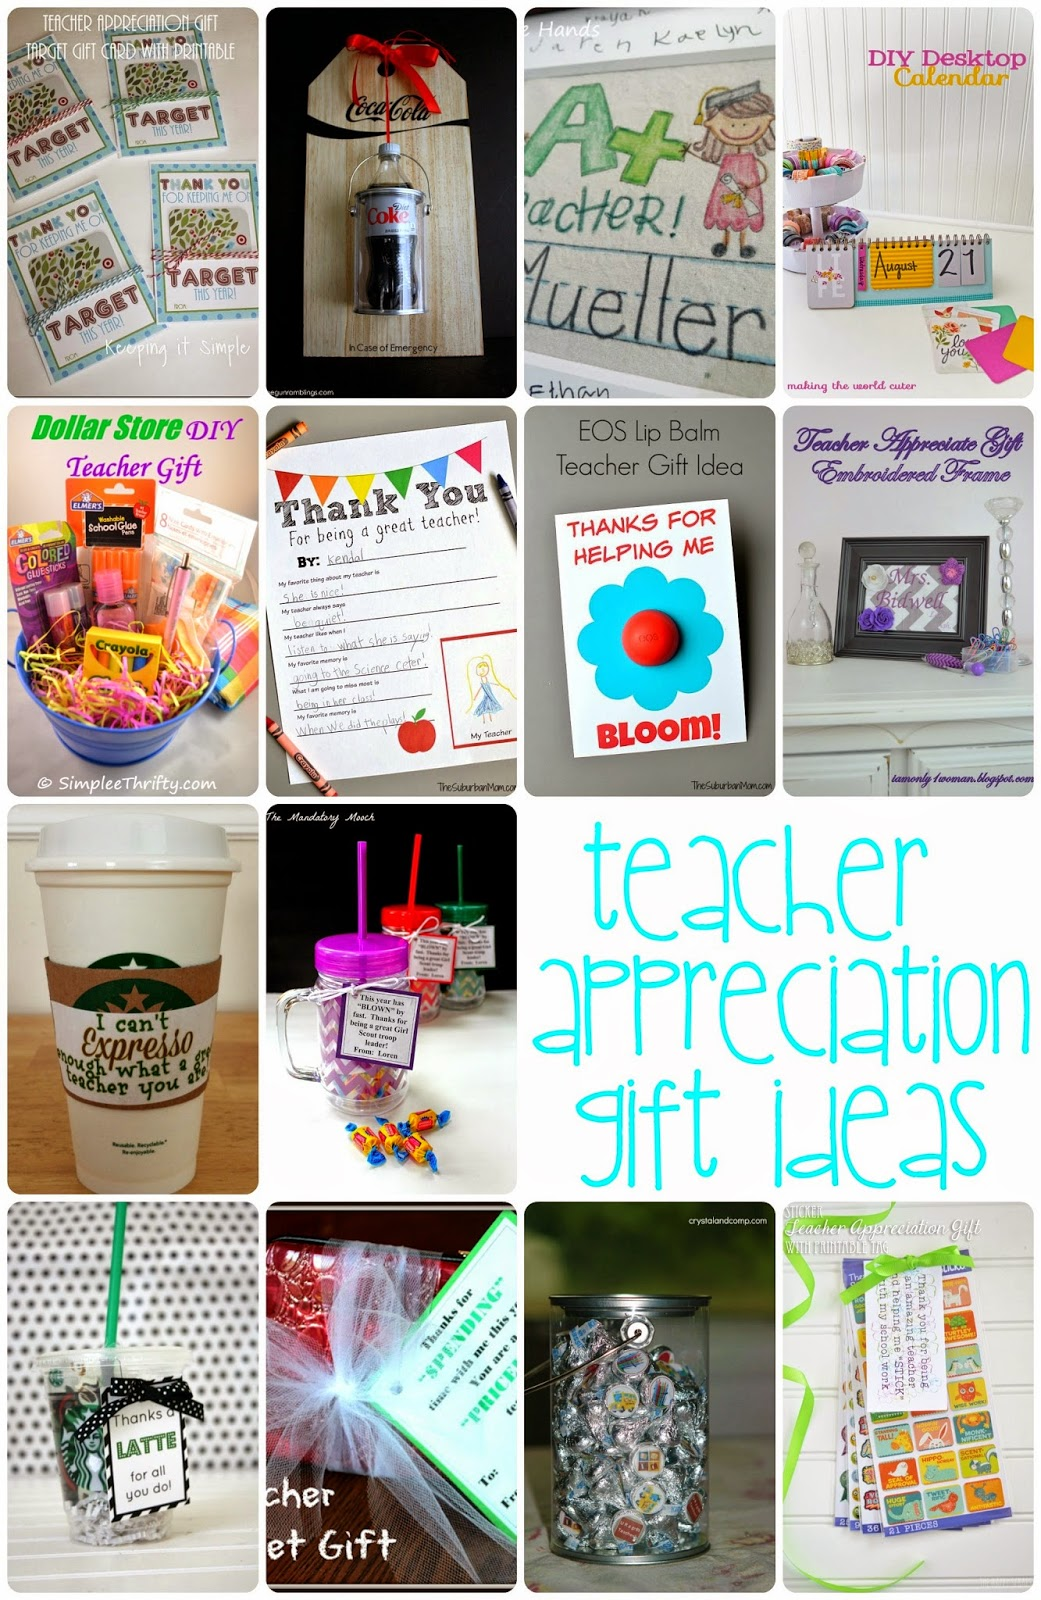 DIY Teacher Appreciation Gift Ideas and Crafts